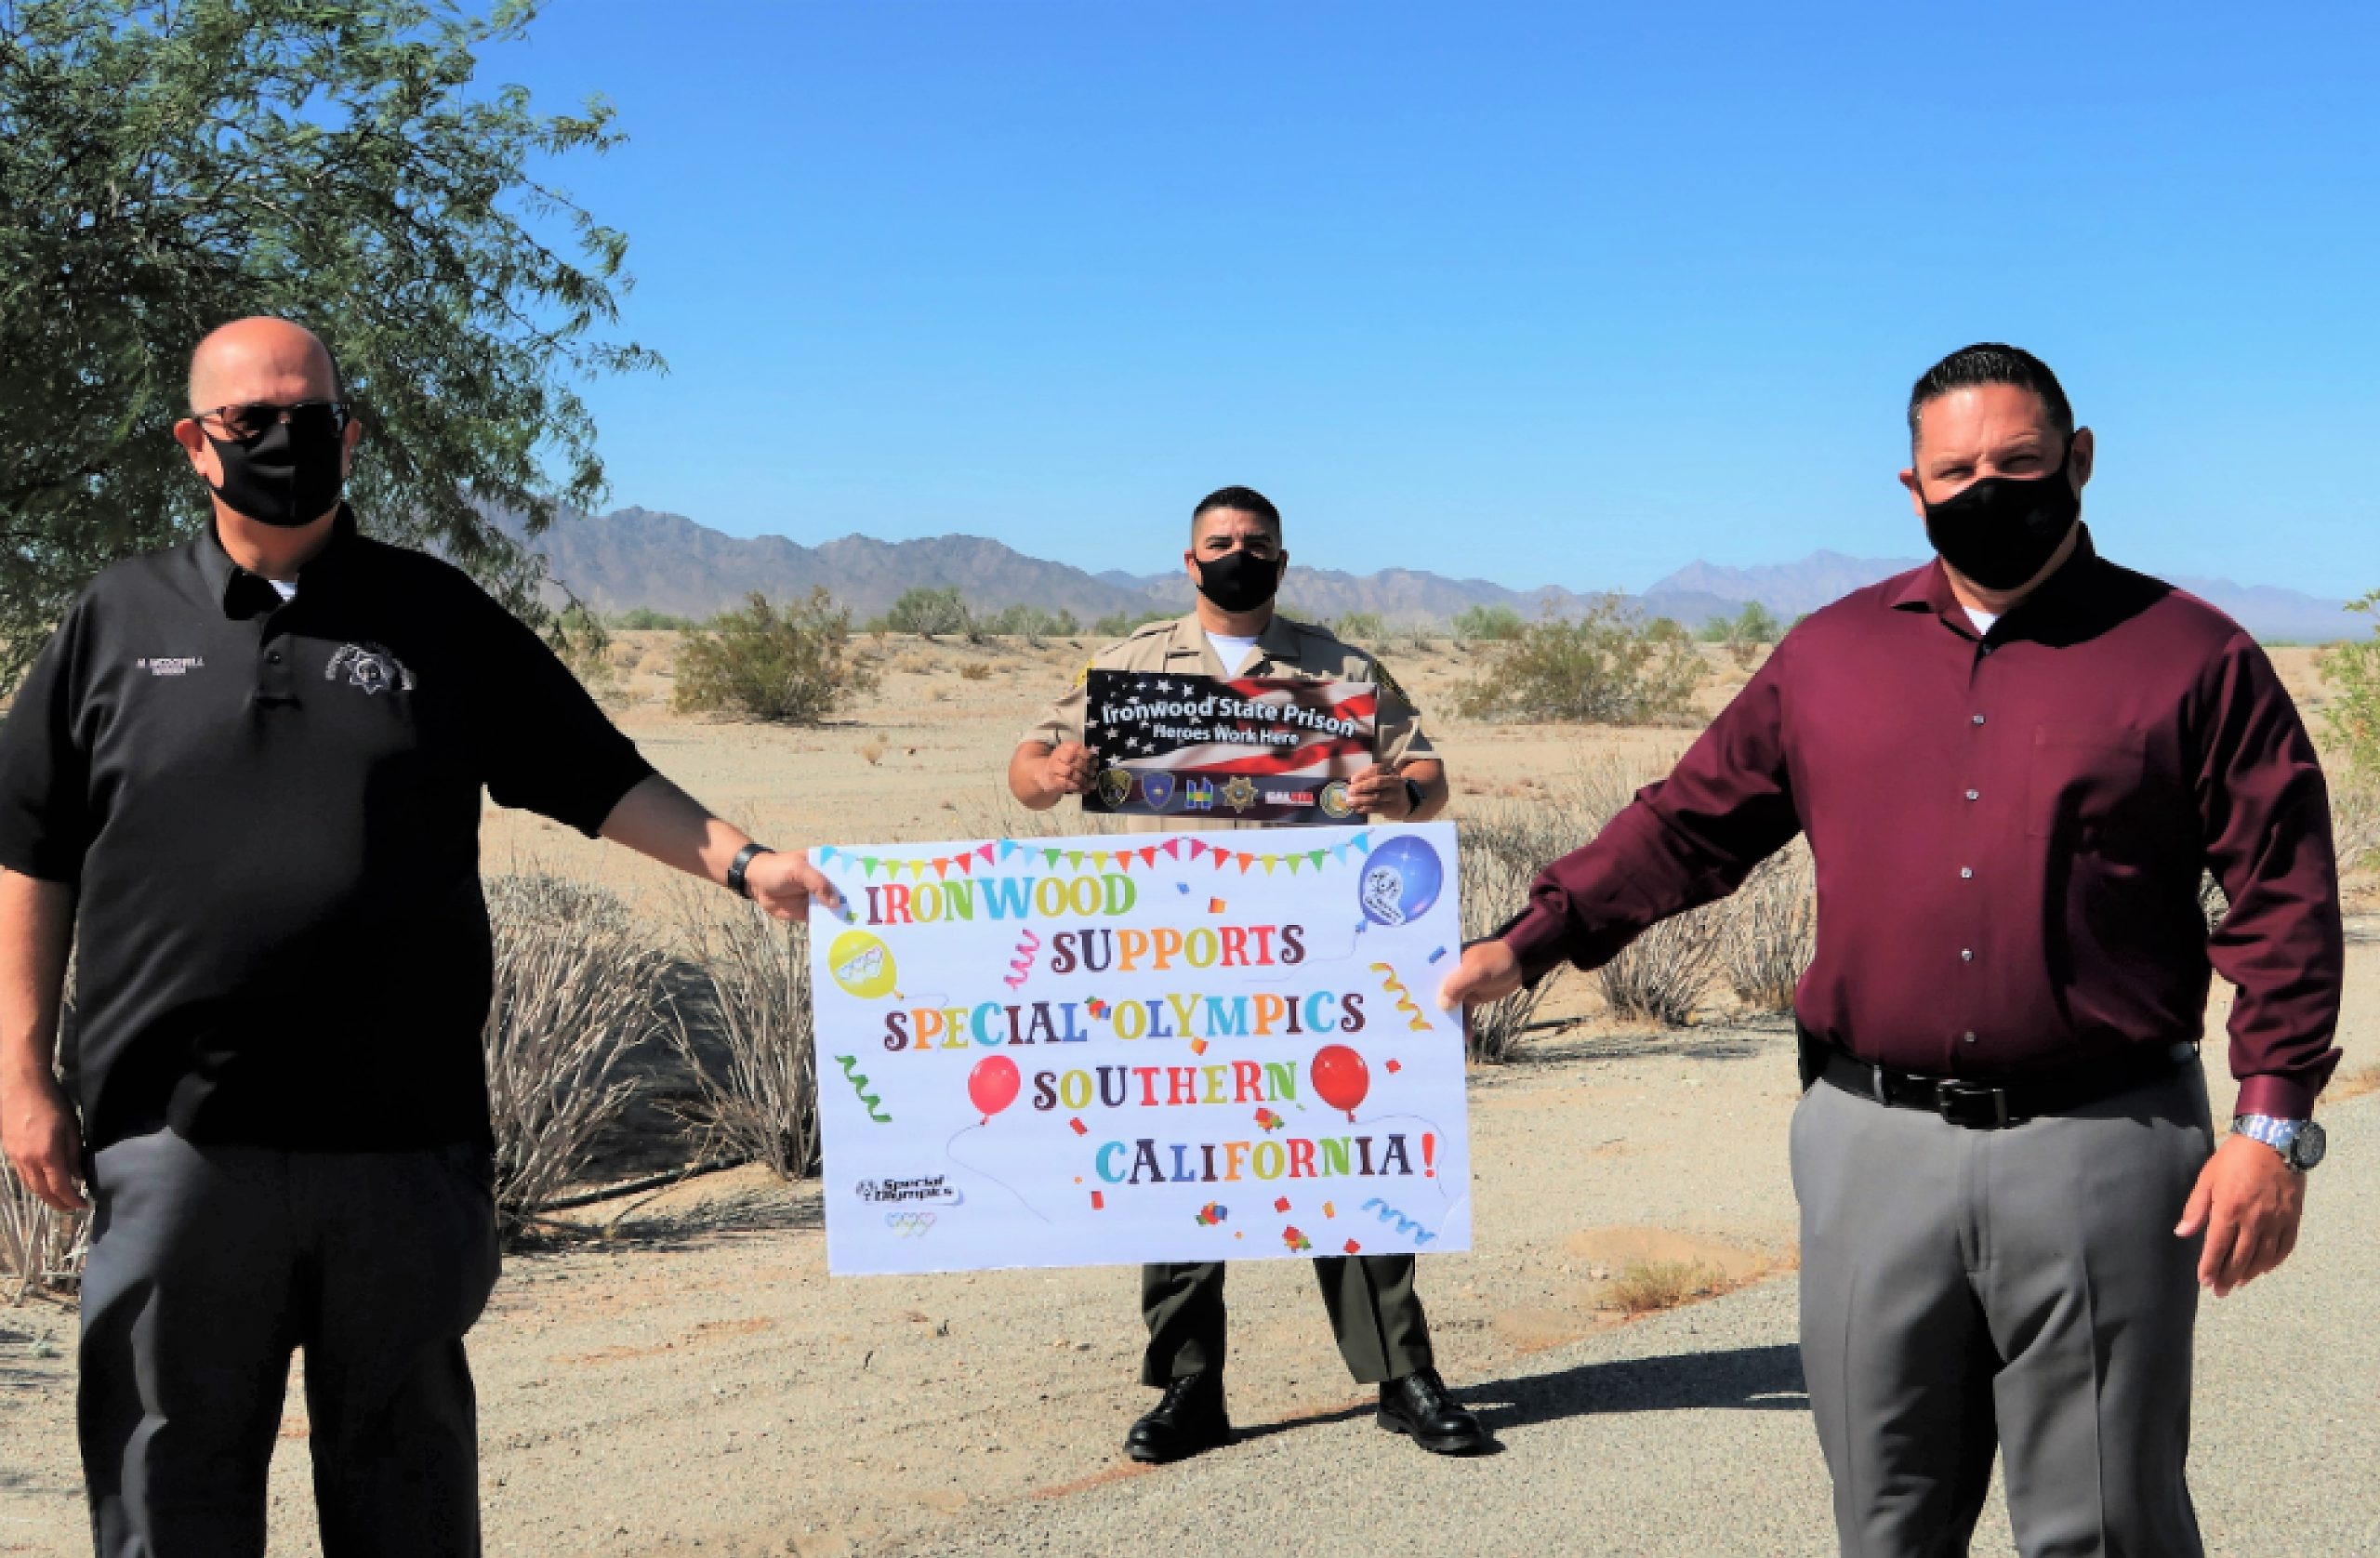 Three men hold signs saying Ironwood State Prison supports Special Olympics.